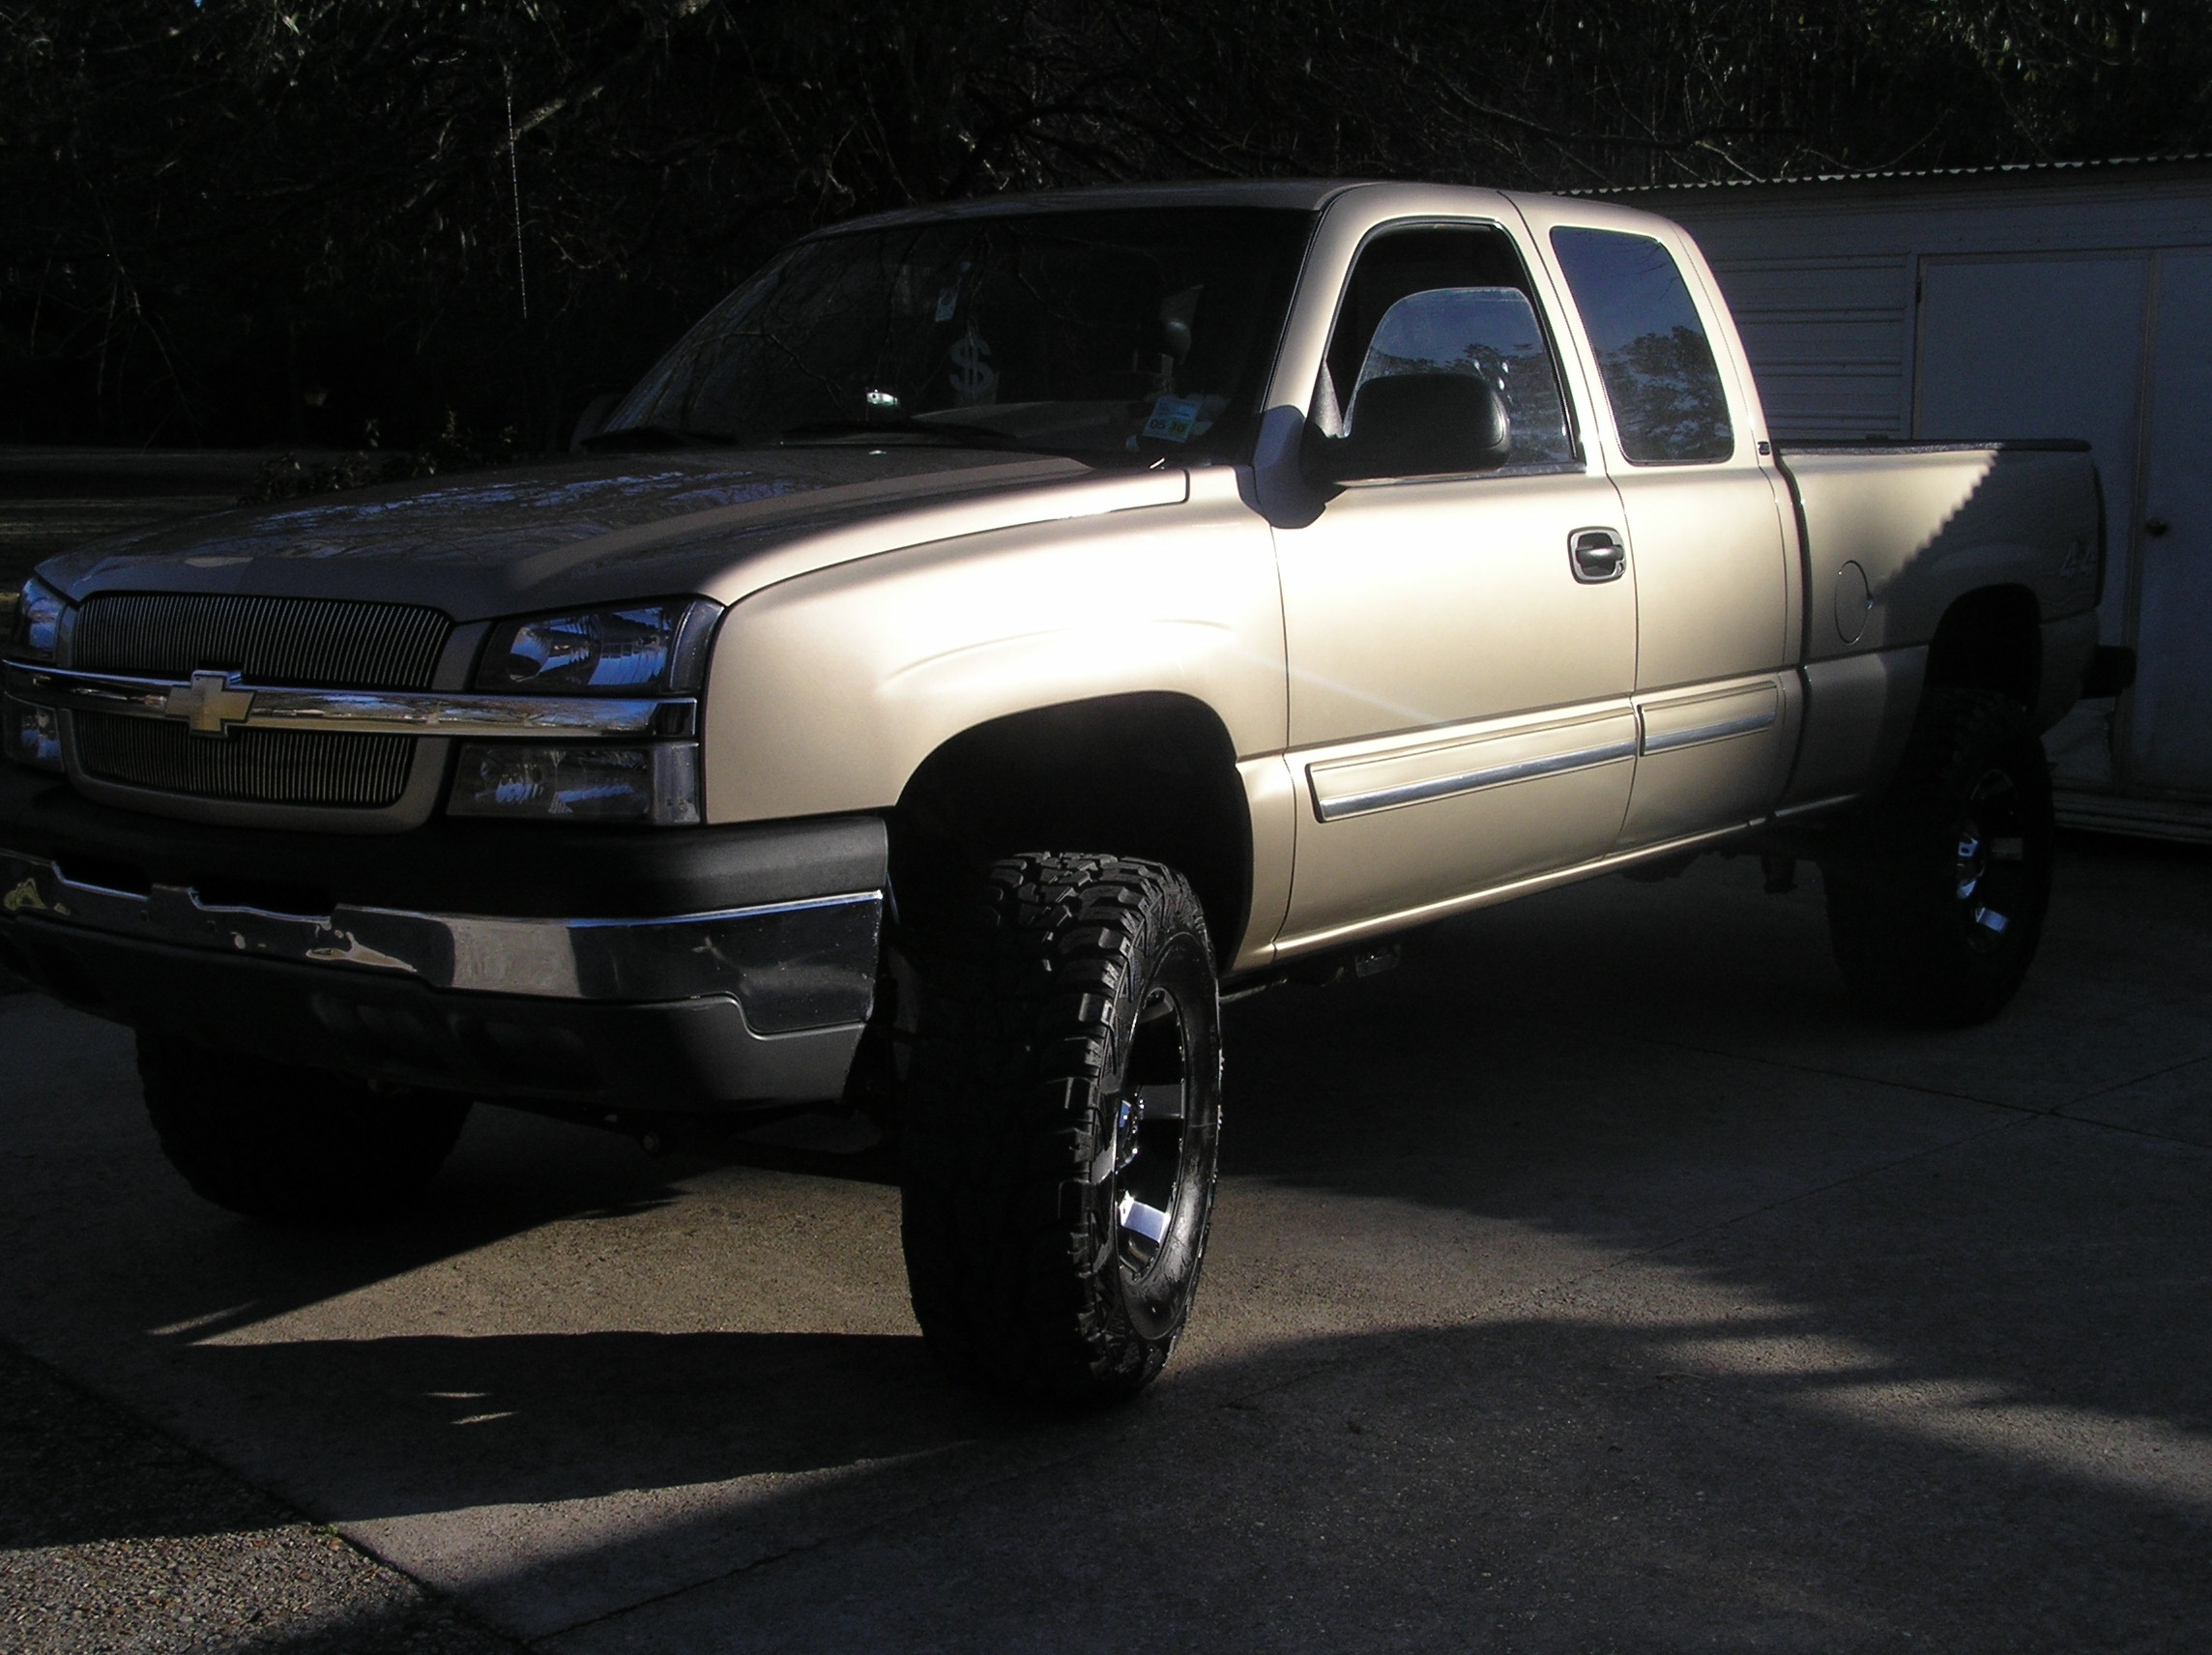 05 chevy silverado 1500 pictures to pin on pinterest pinsdaddy. Black Bedroom Furniture Sets. Home Design Ideas